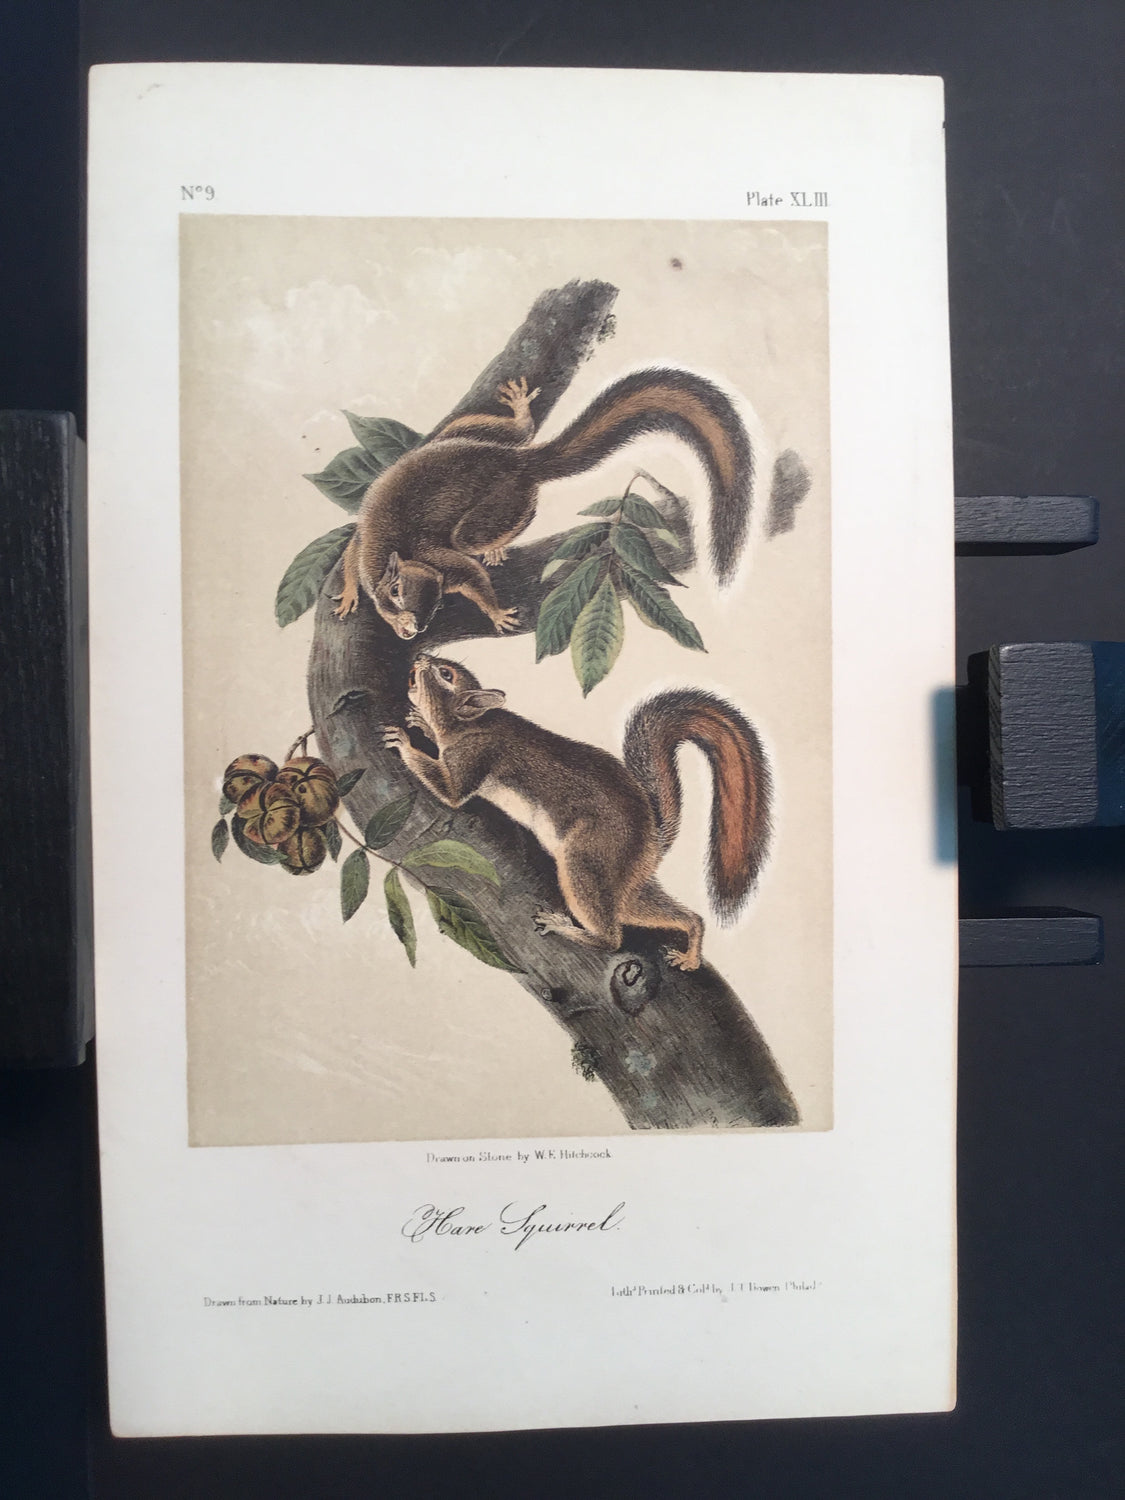 Lord-Hopkins Collection - Hare Squirrel